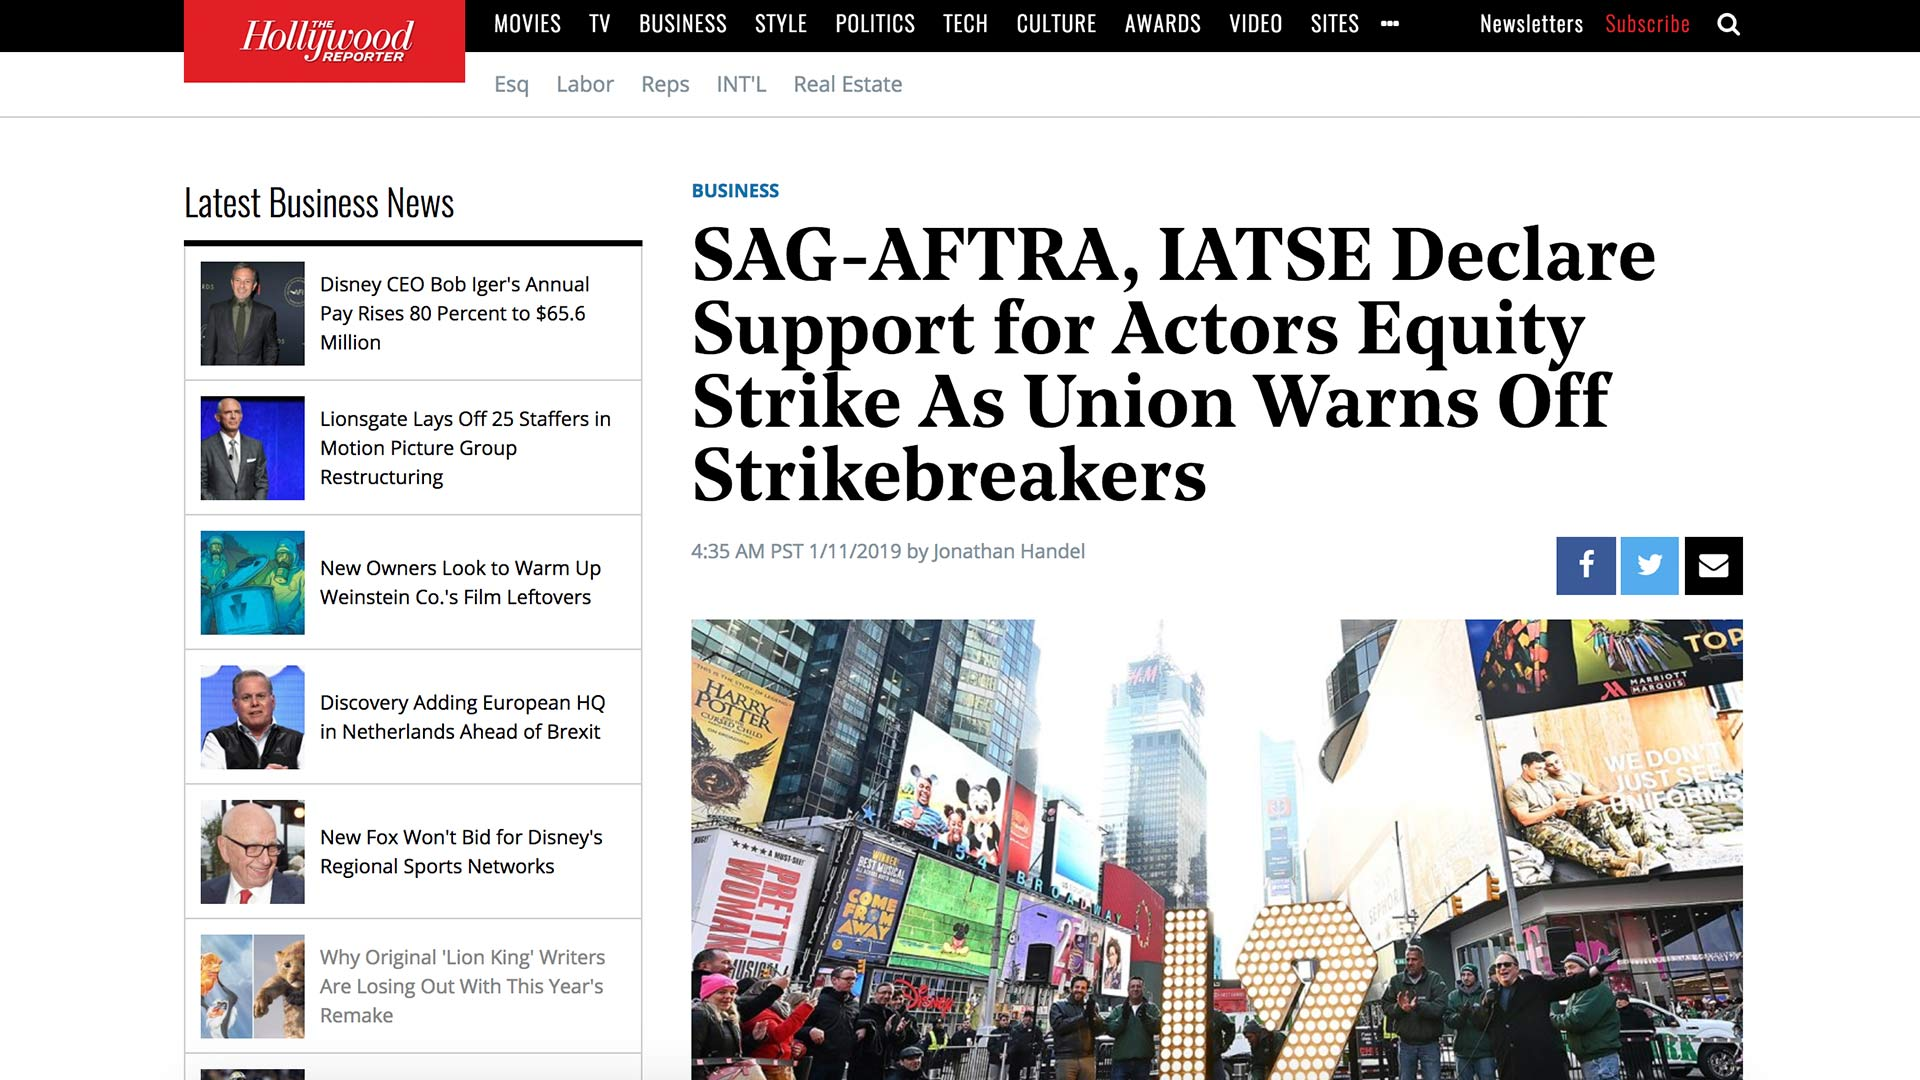 Fairness Rocks News SAG-AFTRA, IATSE Declare Support for Actors Equity Strike As Union Warns Off Strikebreakers